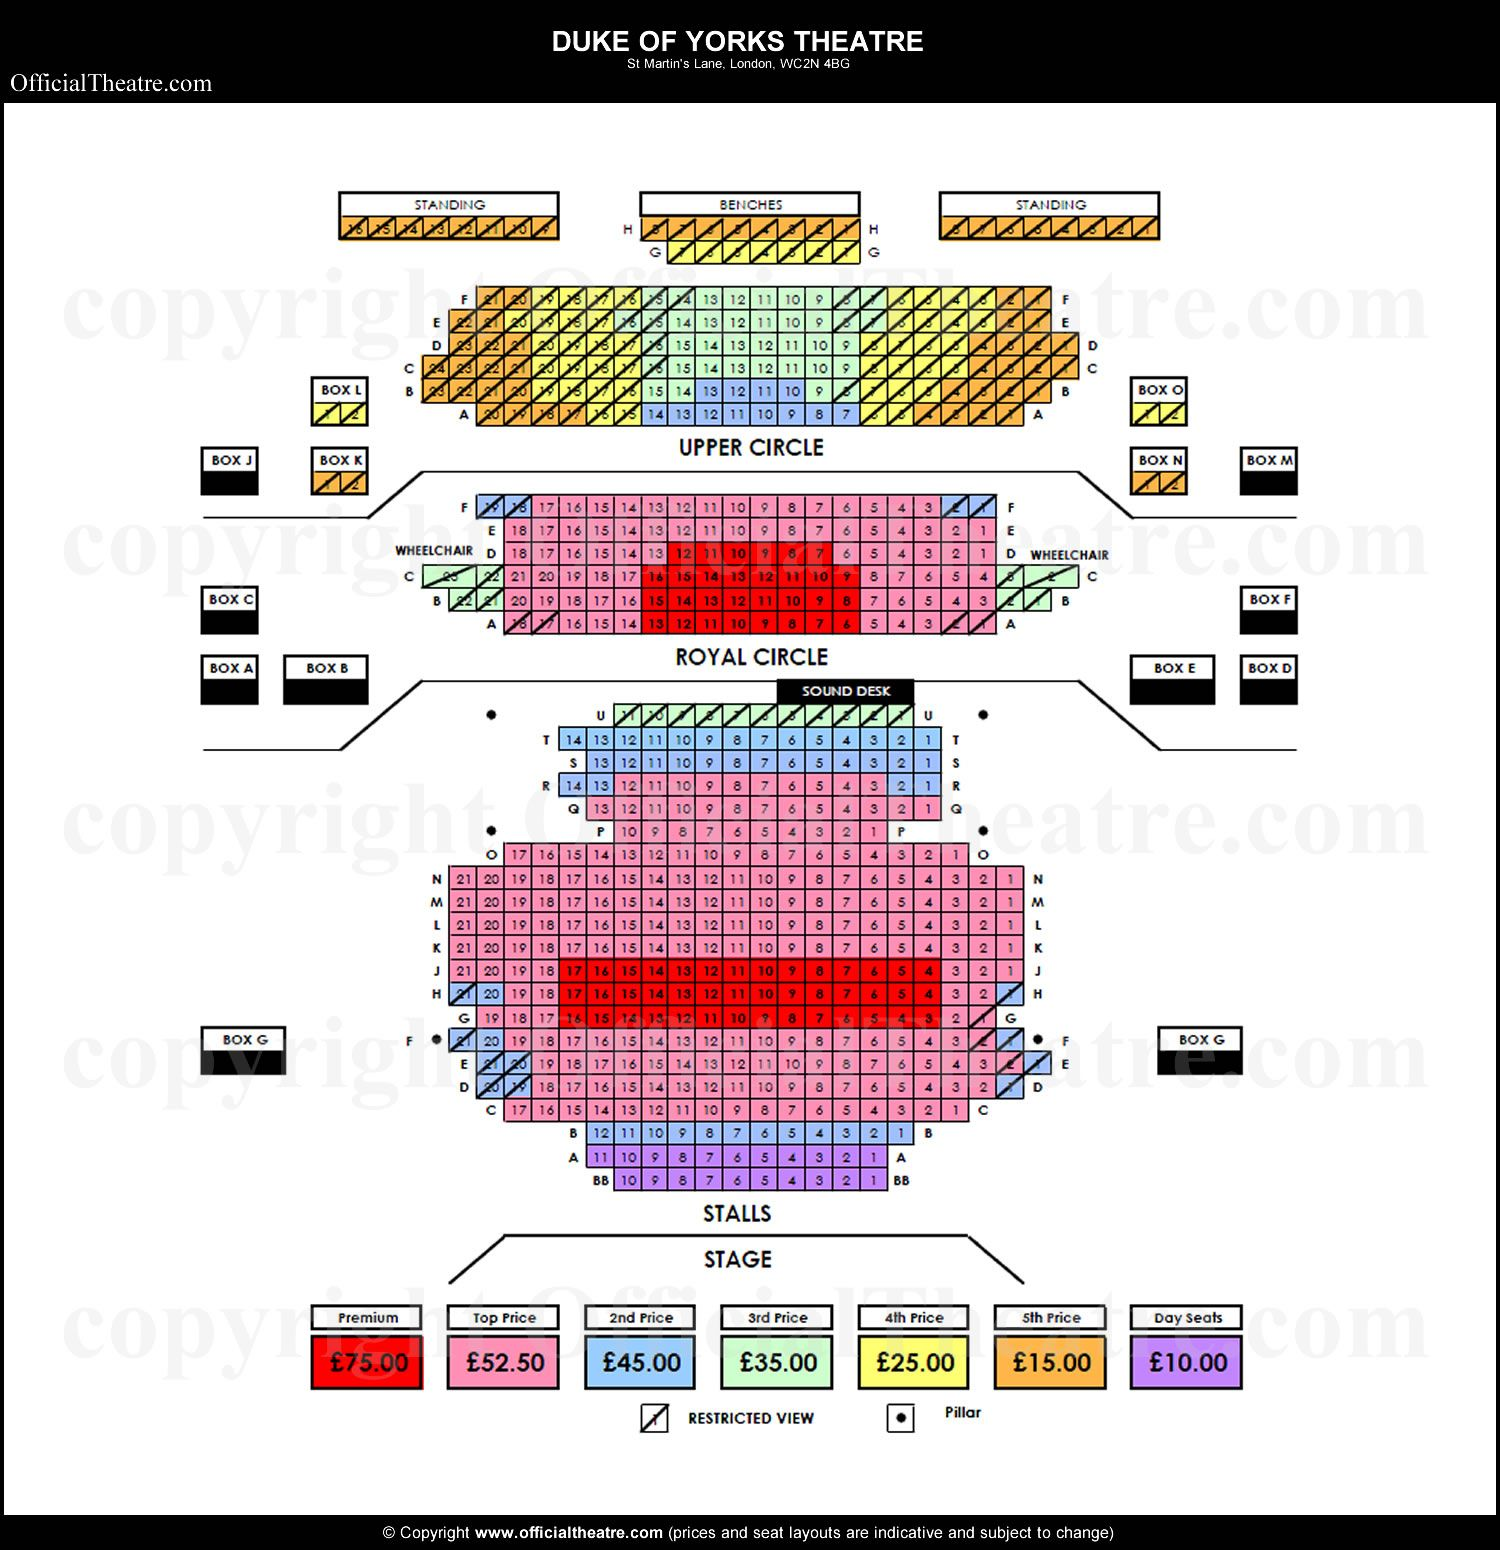 Duke Yorks Theatre Seat plan and prices